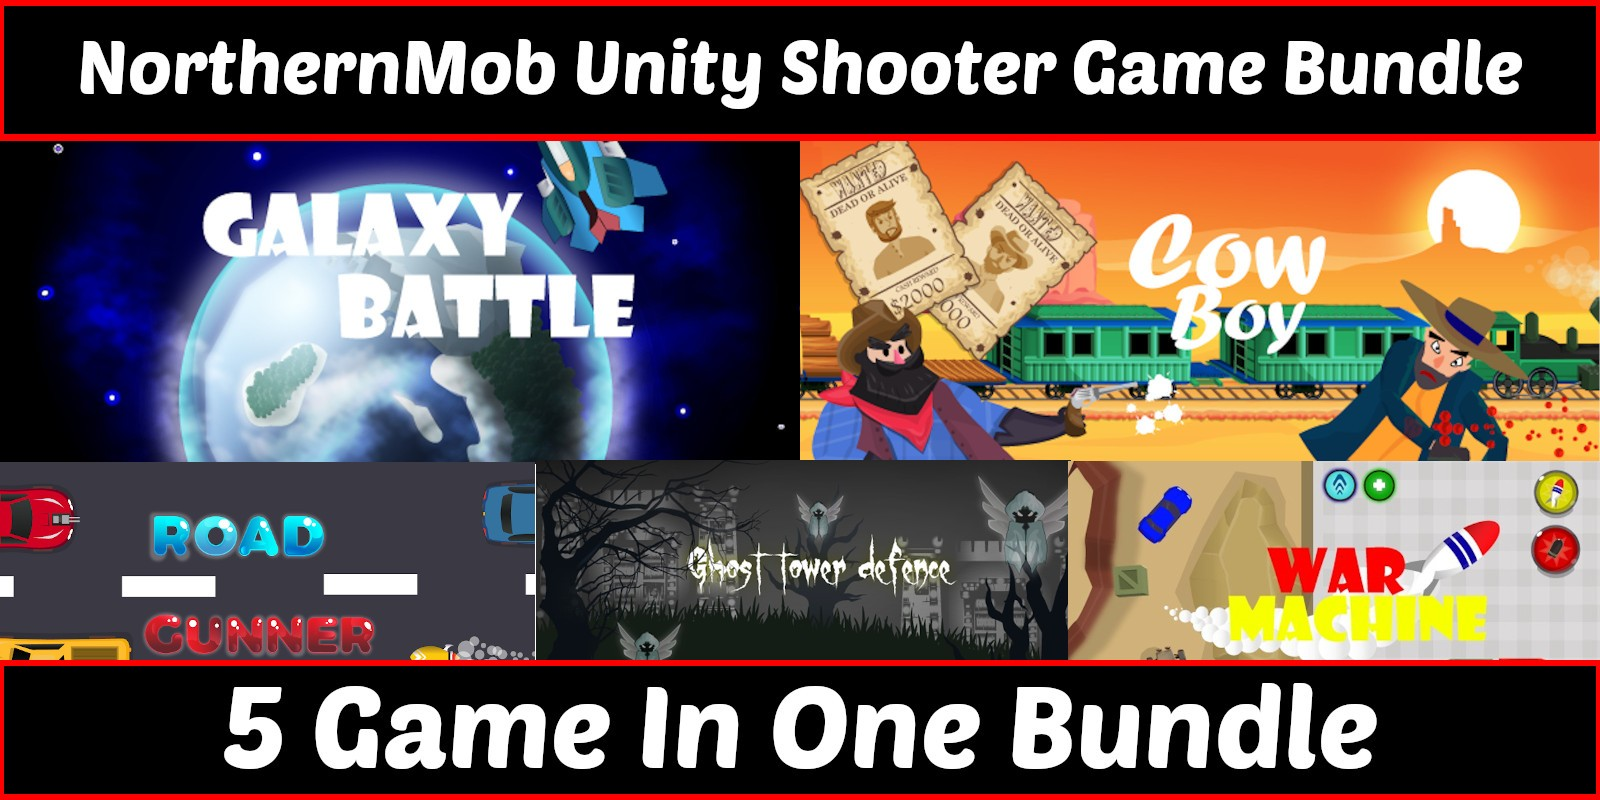 Unity Shooter Bundles - 5 Games